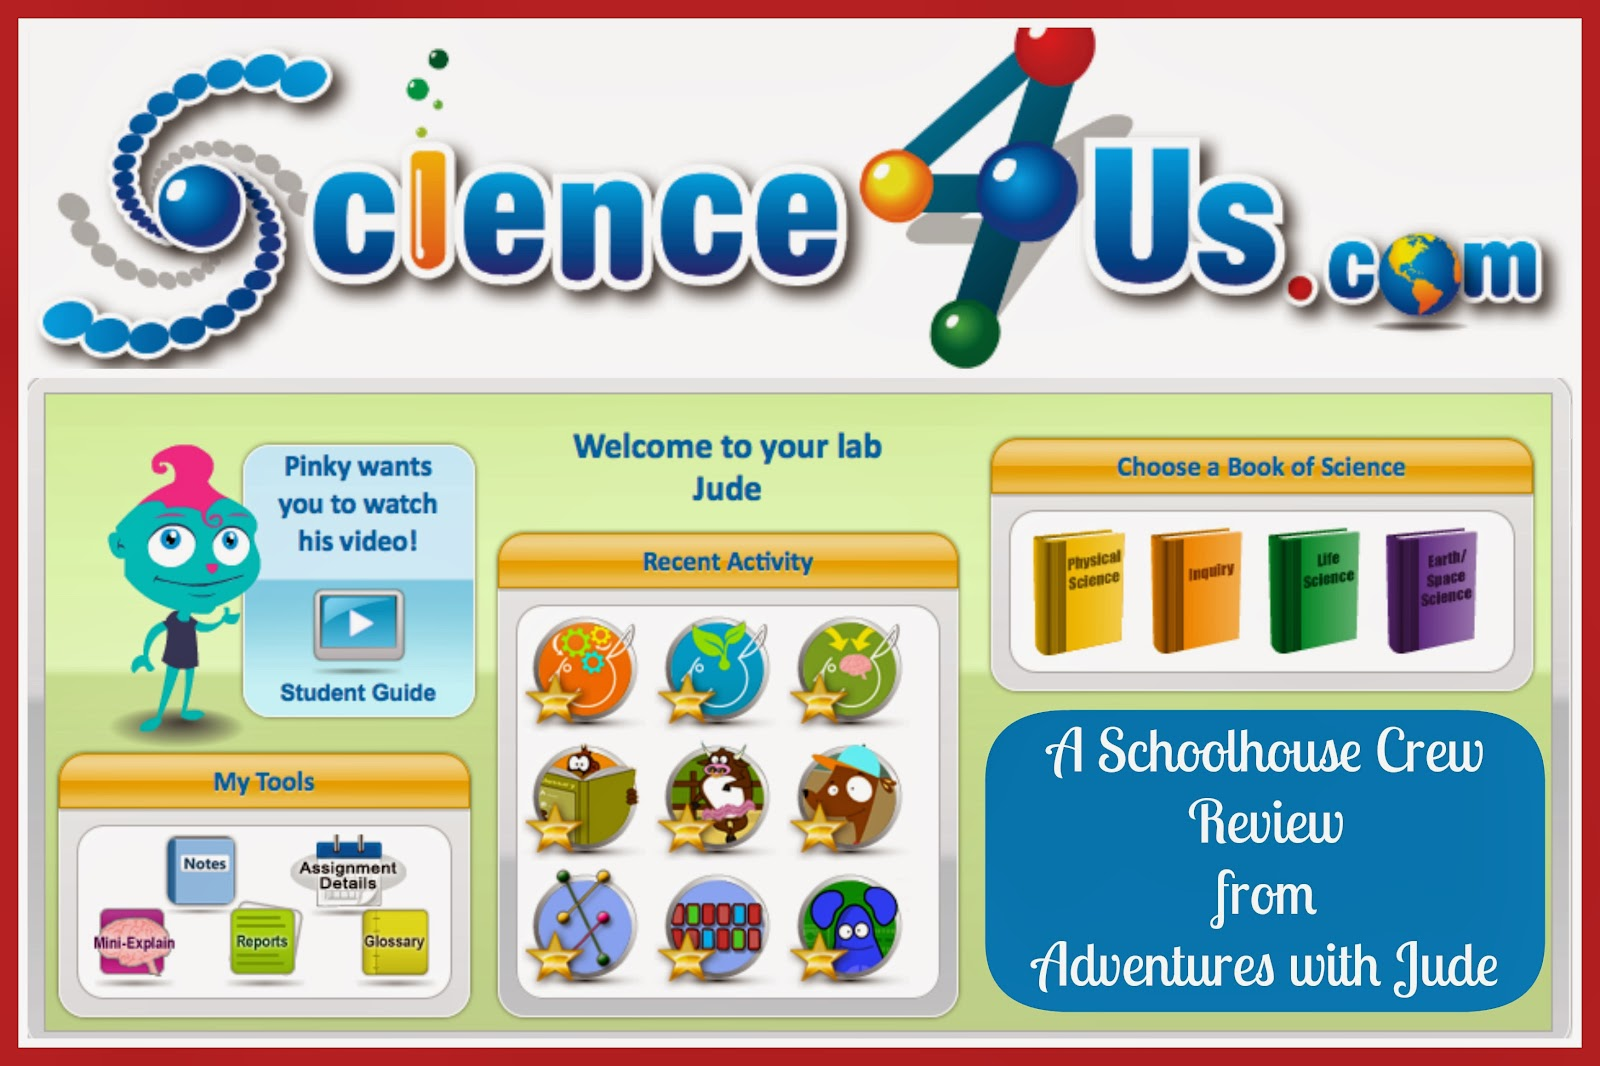 Science 4 Us.com A Schoolhouse Crew Review